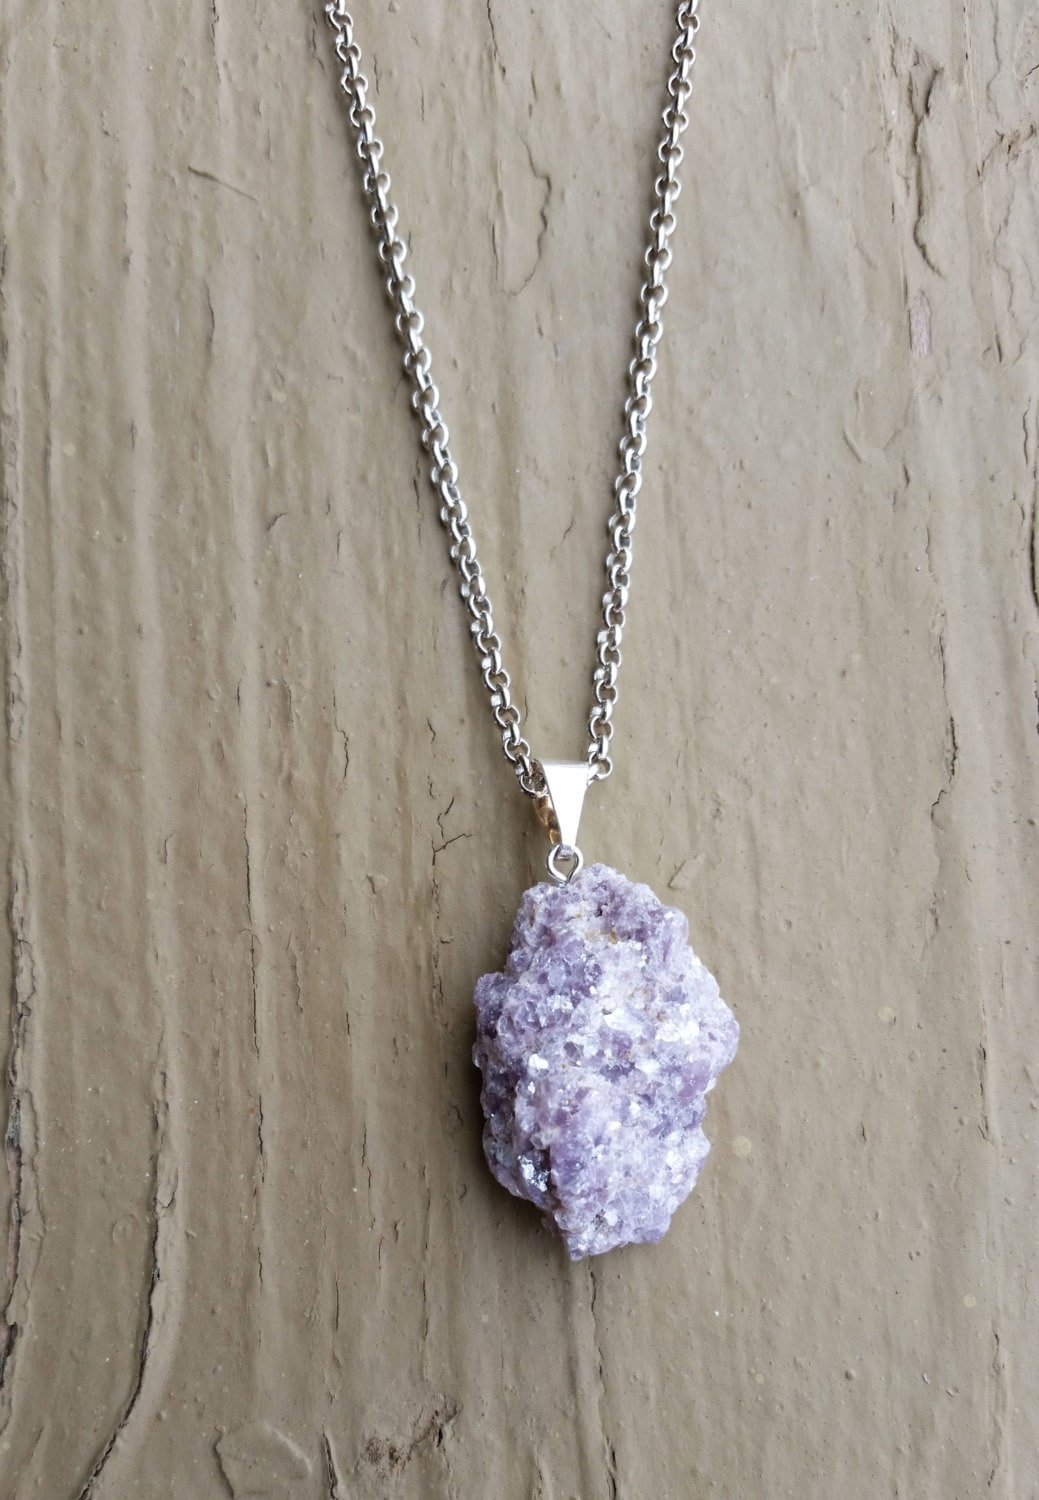 Raw Lepidolite Crystal Necklace Rock Jewelry Geo Crystal